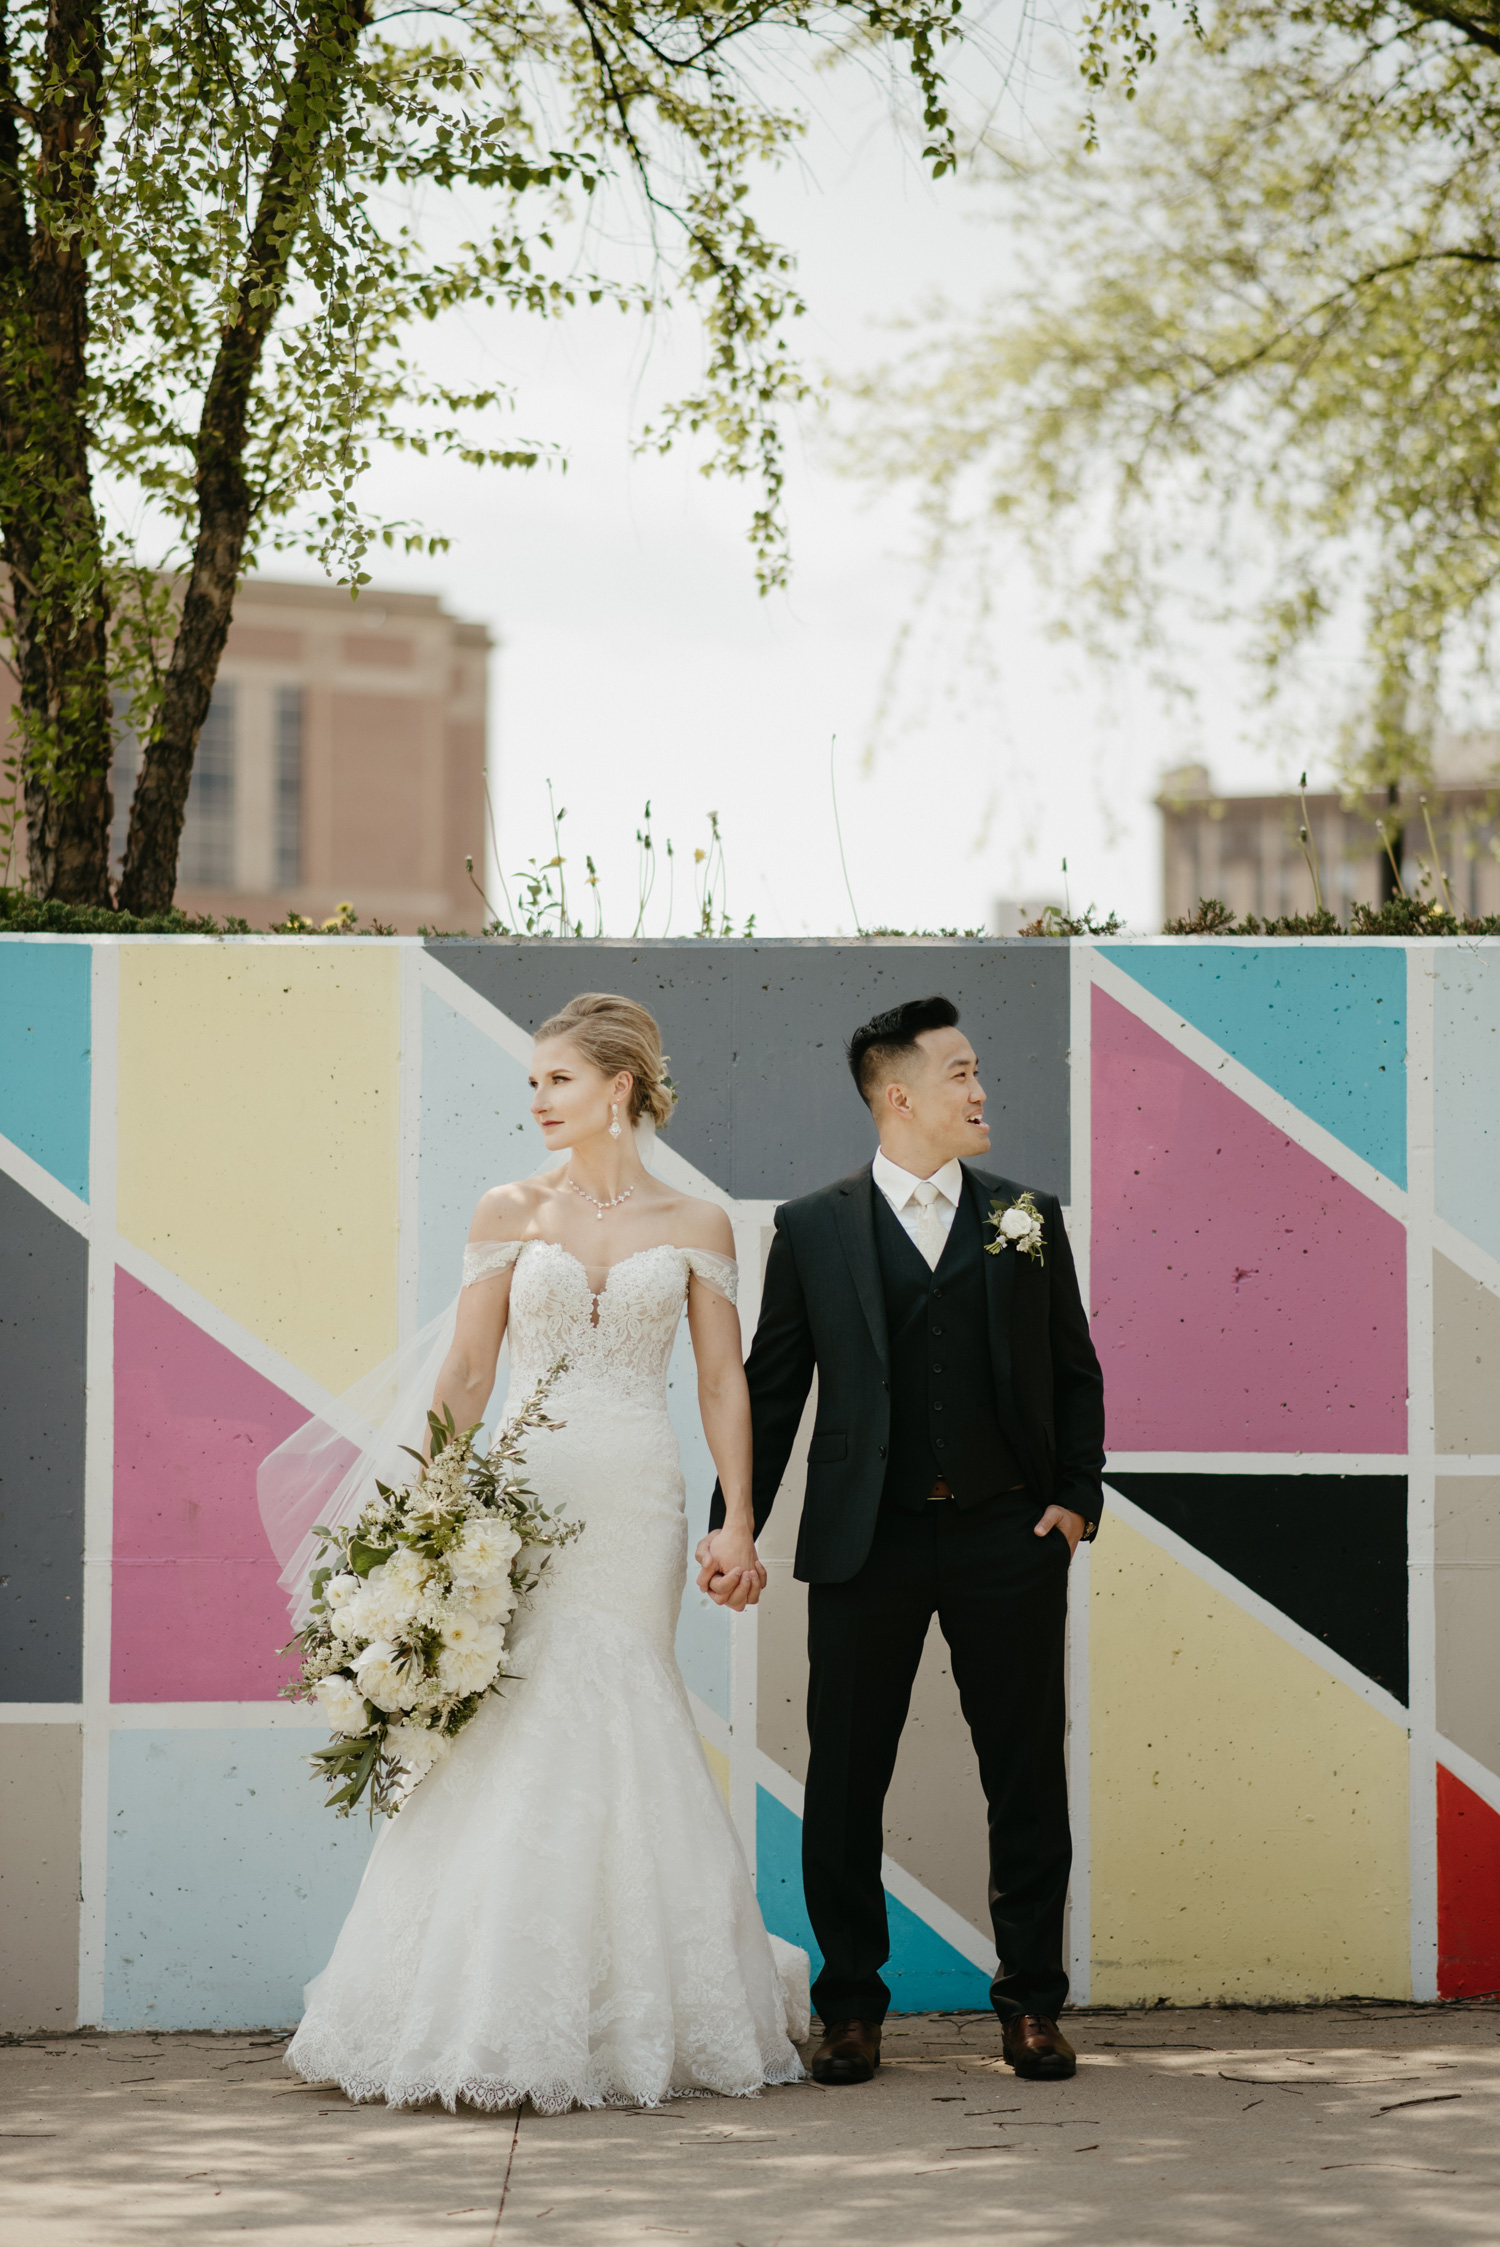 Bride and groom posing in front of multicolored wall